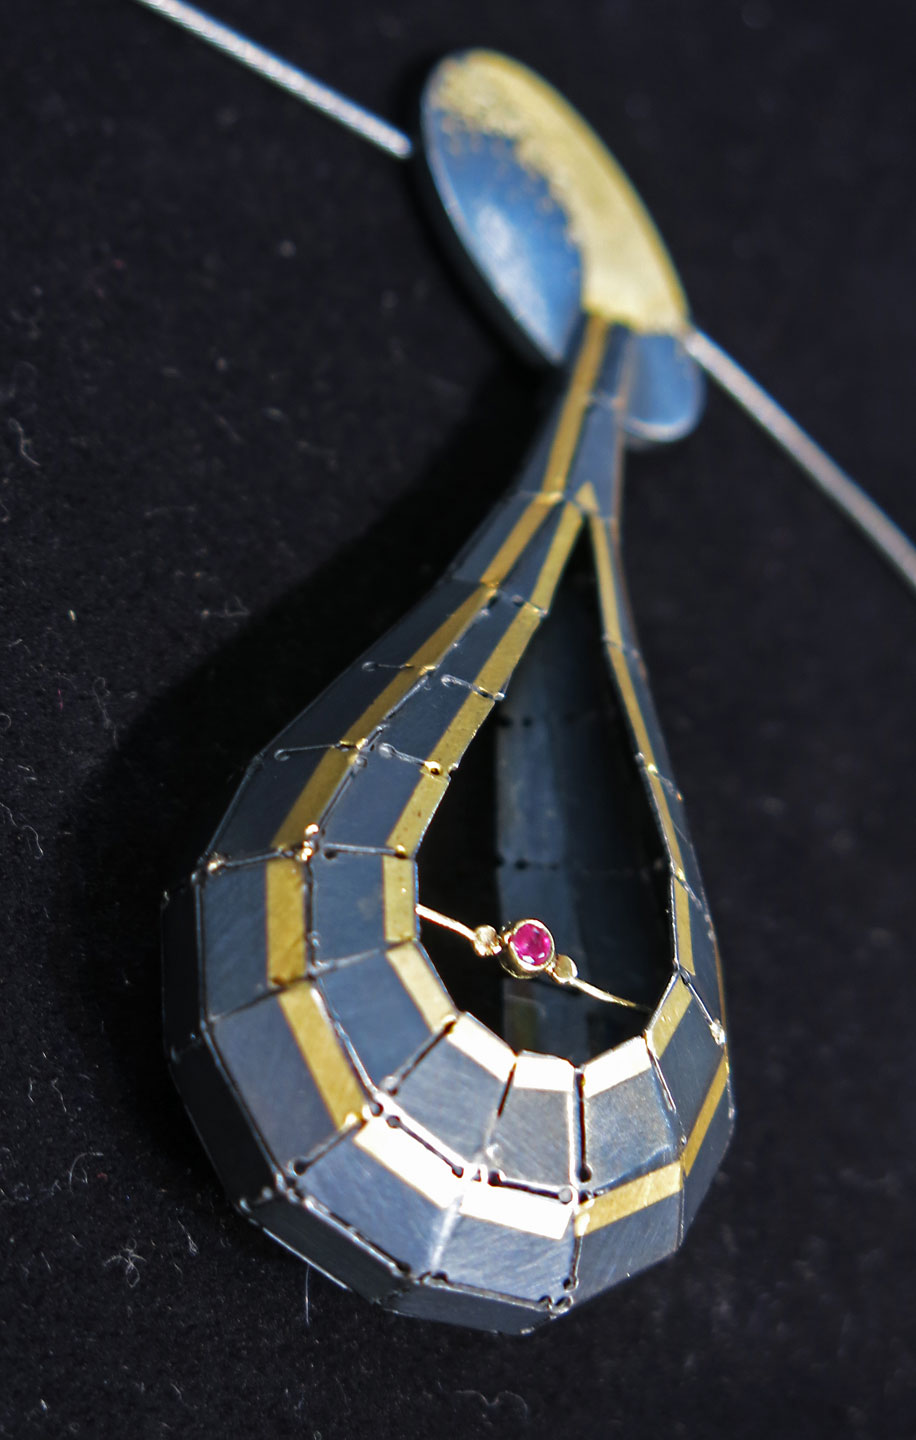 Another view of the previous pendant. SJ says this particular piece was made to represent a teardrop.